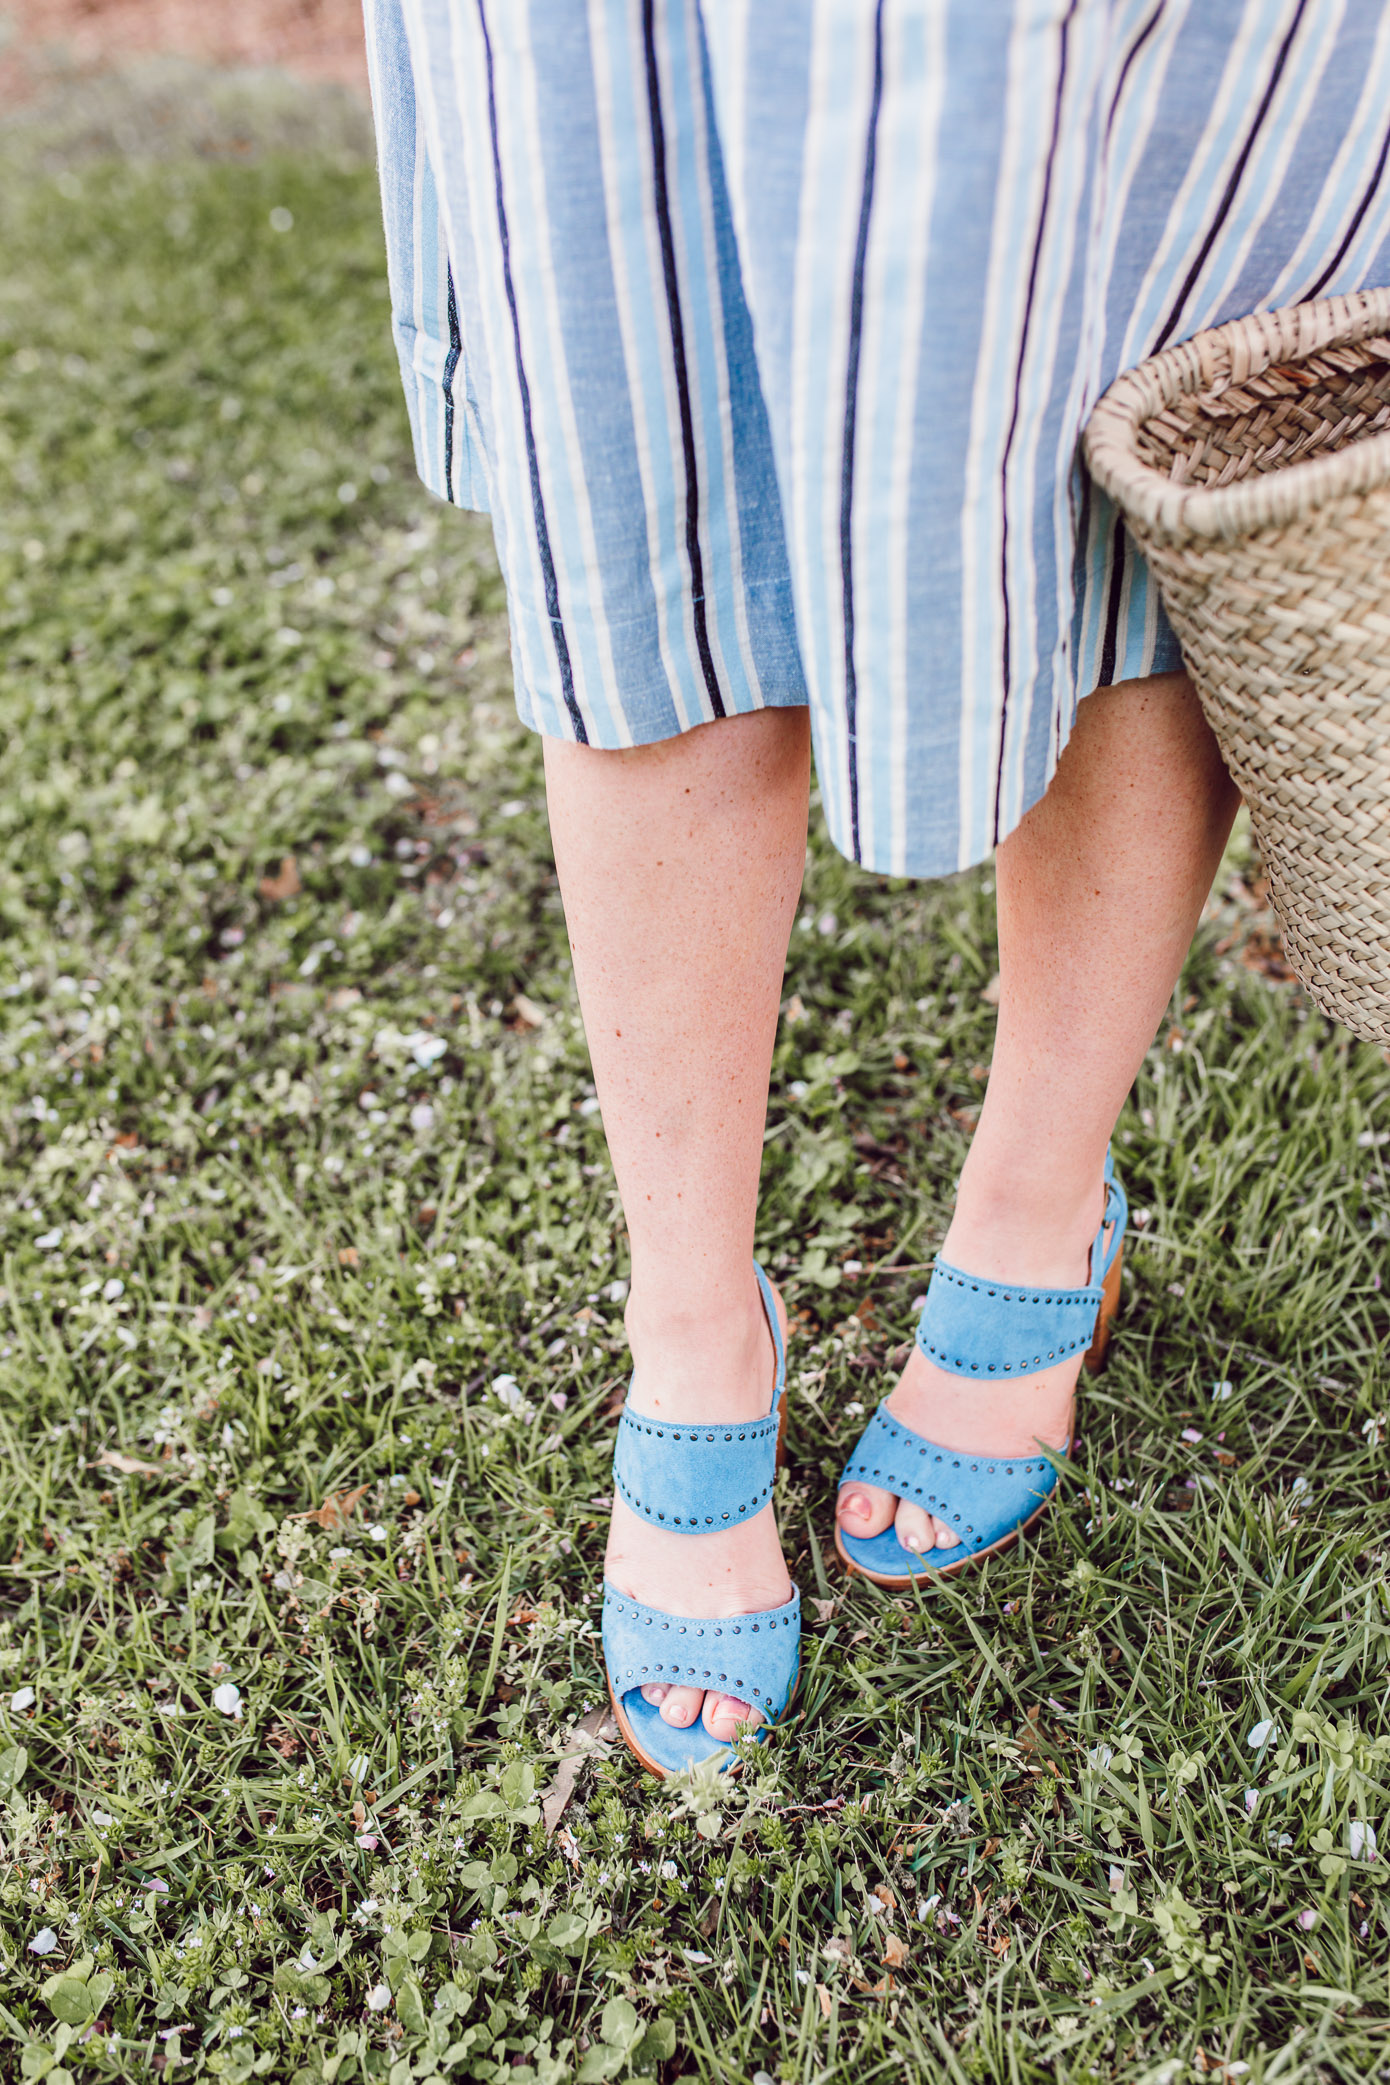 Blue High-Heeled Sandals for Spring | ft. Ariat Two24, Anthropologie, Terrain | Louella Reese